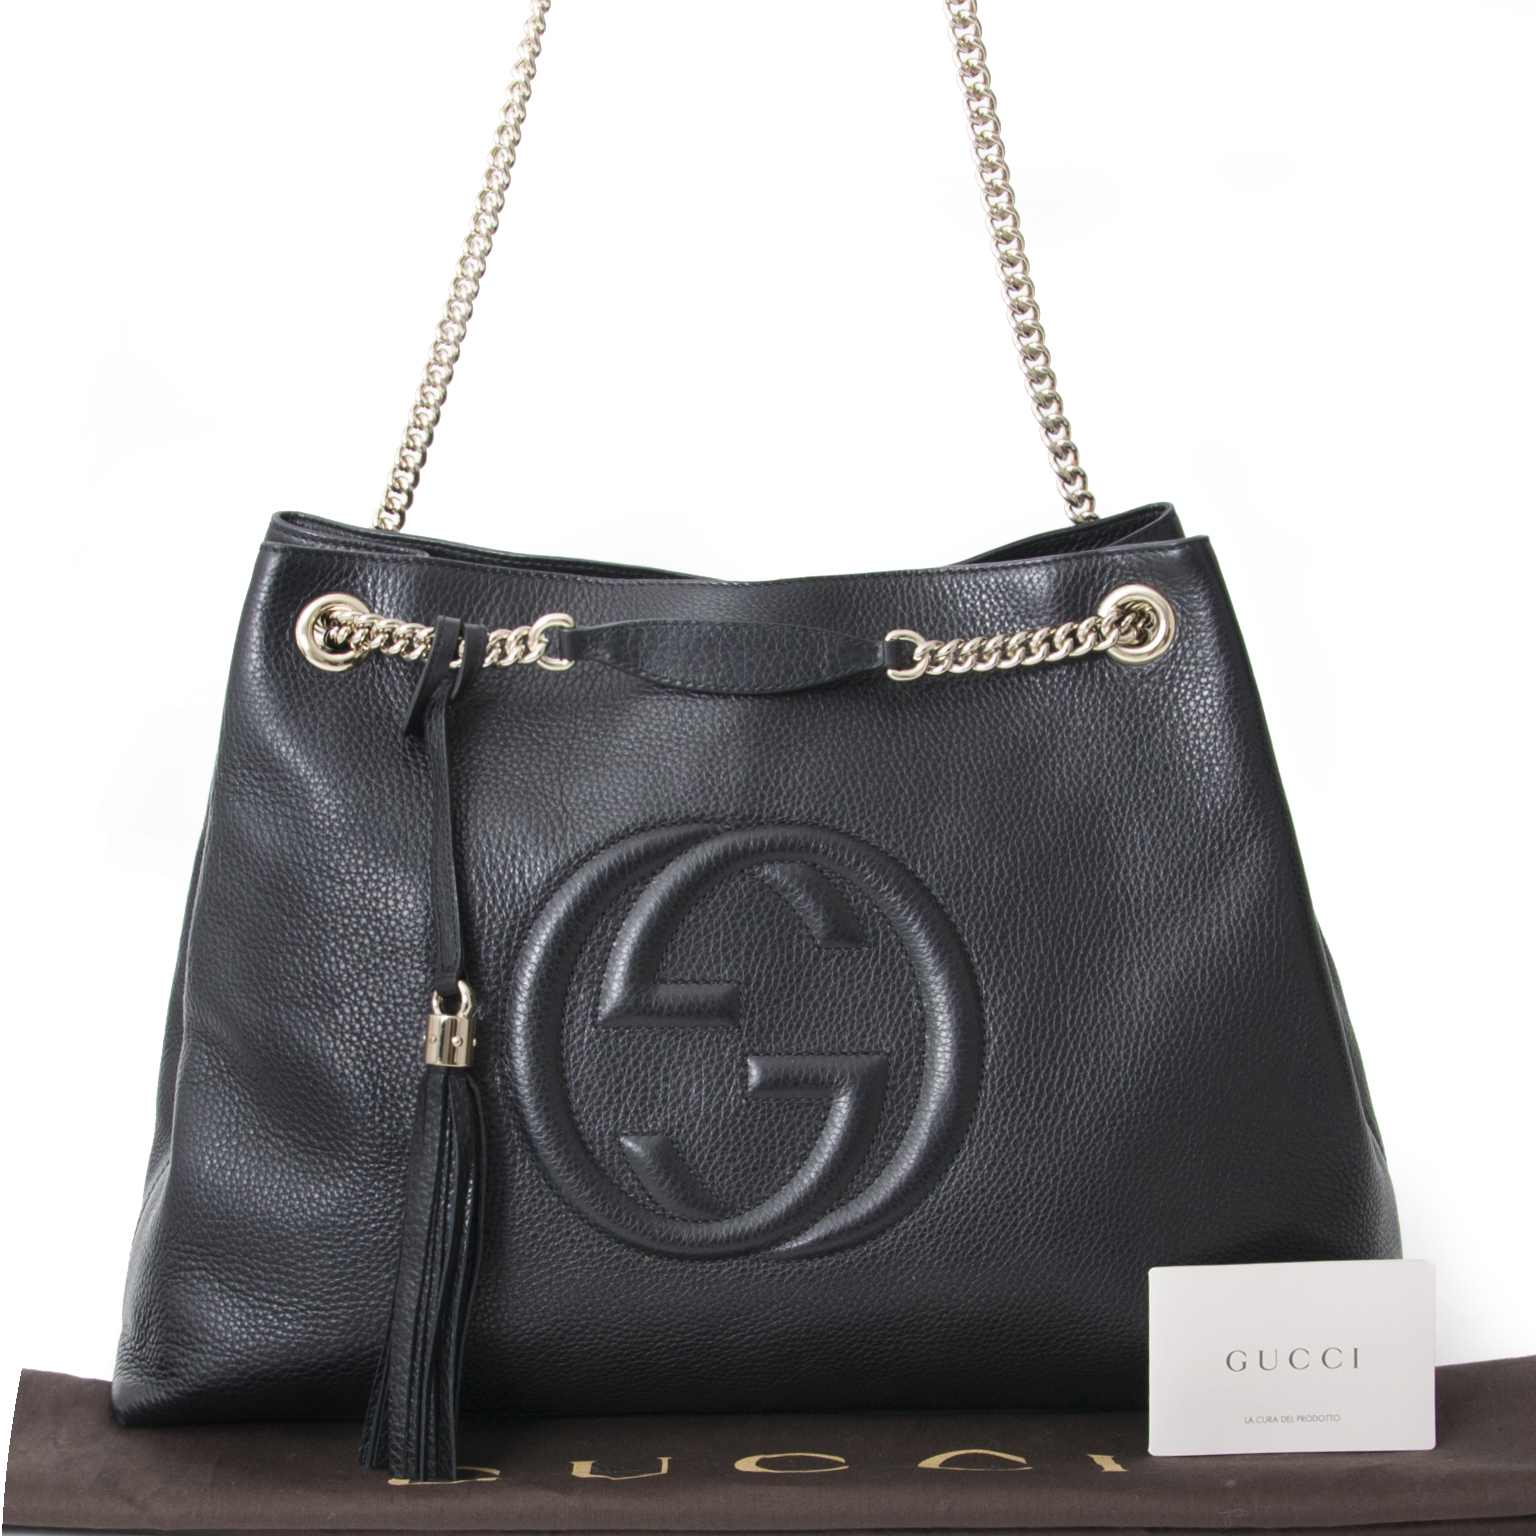 Buy authentic Gucci Soho Bag at the right price at LabelLOV vintage  webshop. Luxe ac000634f75